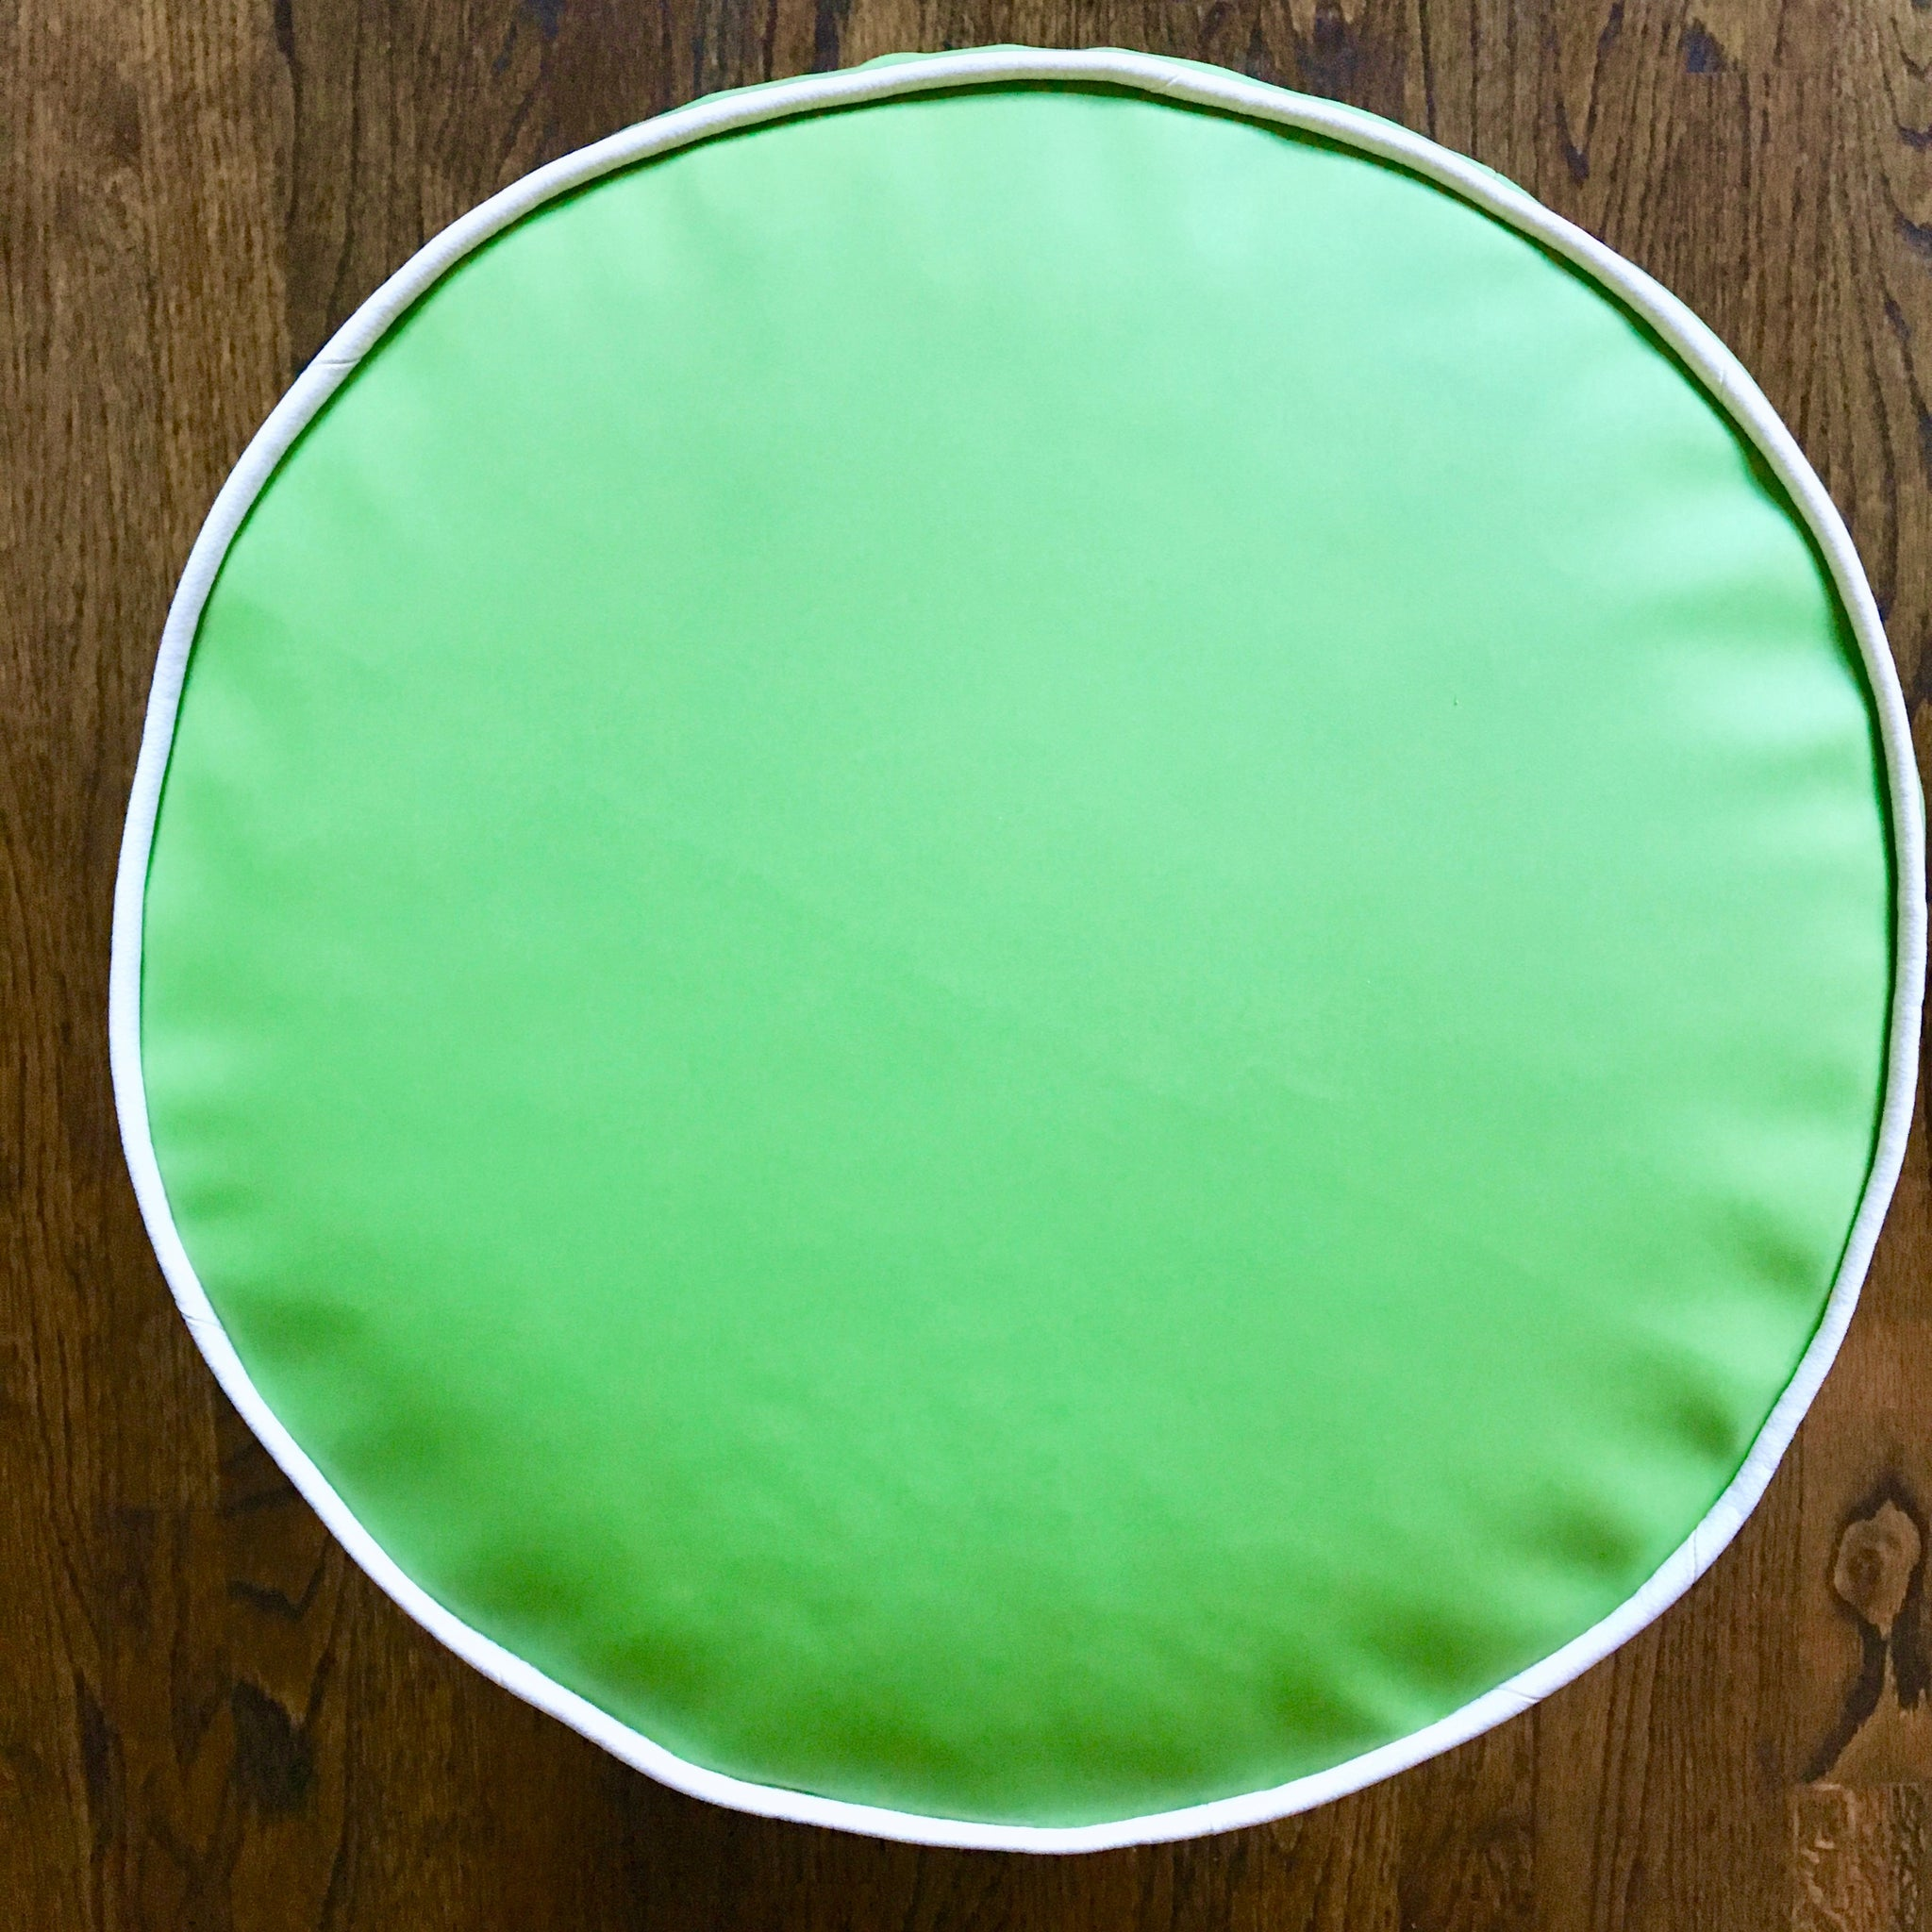 Bright Spring Green and White Faux Leather Outdoor Pouf Ottoman | Waterproof | Handmade in USA | Kelly Green Outdoor Decor